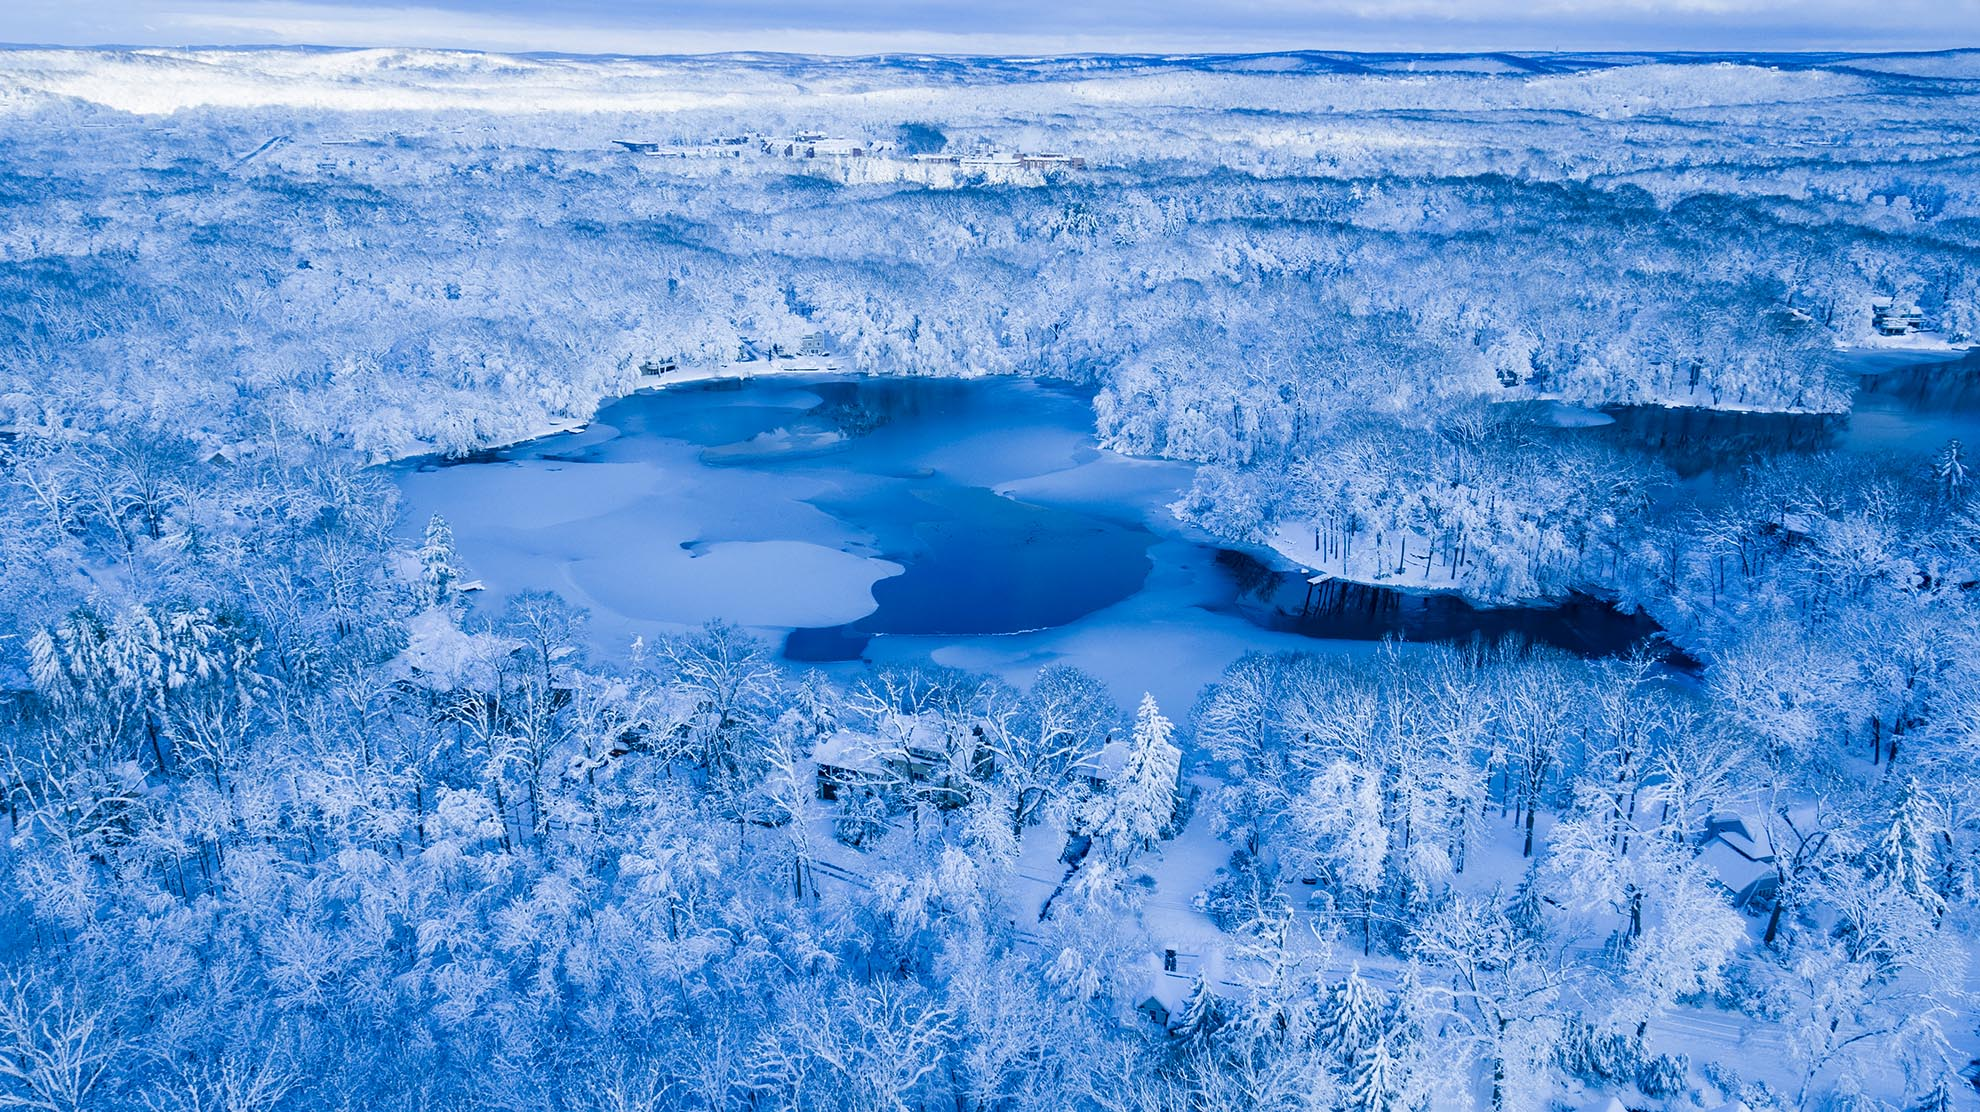 Photograph of Sunset Lake Mountain Lakes NJ after snow storm from a drone